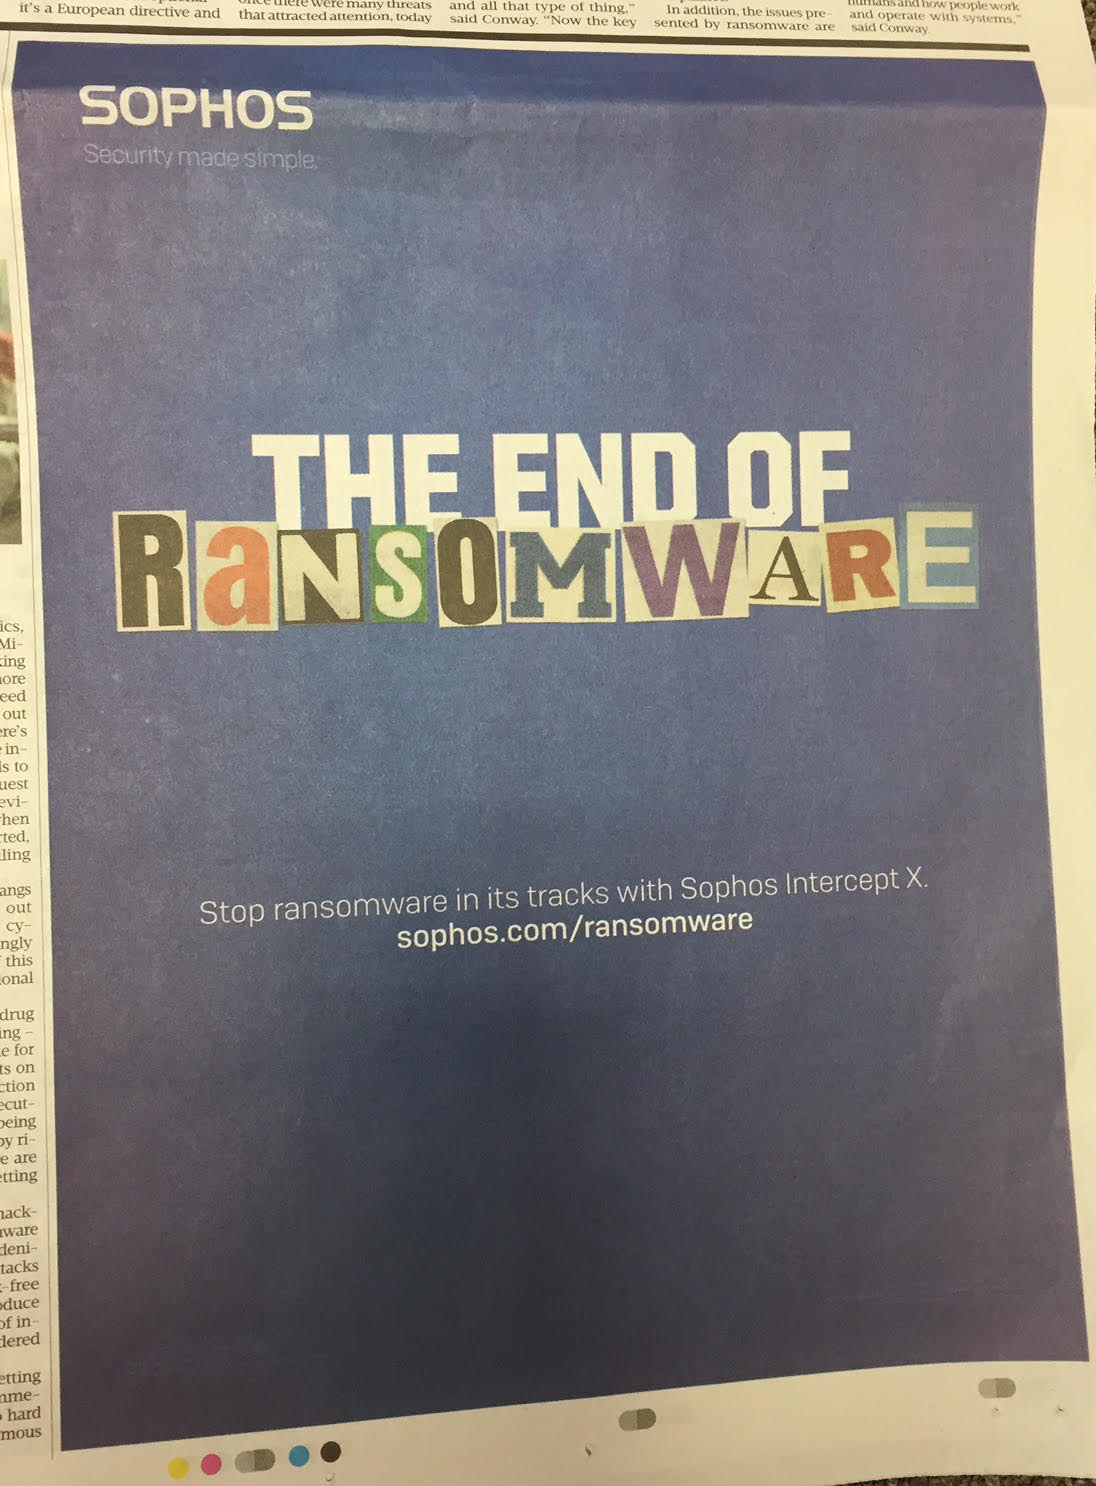 Sophos – the end of ransomware